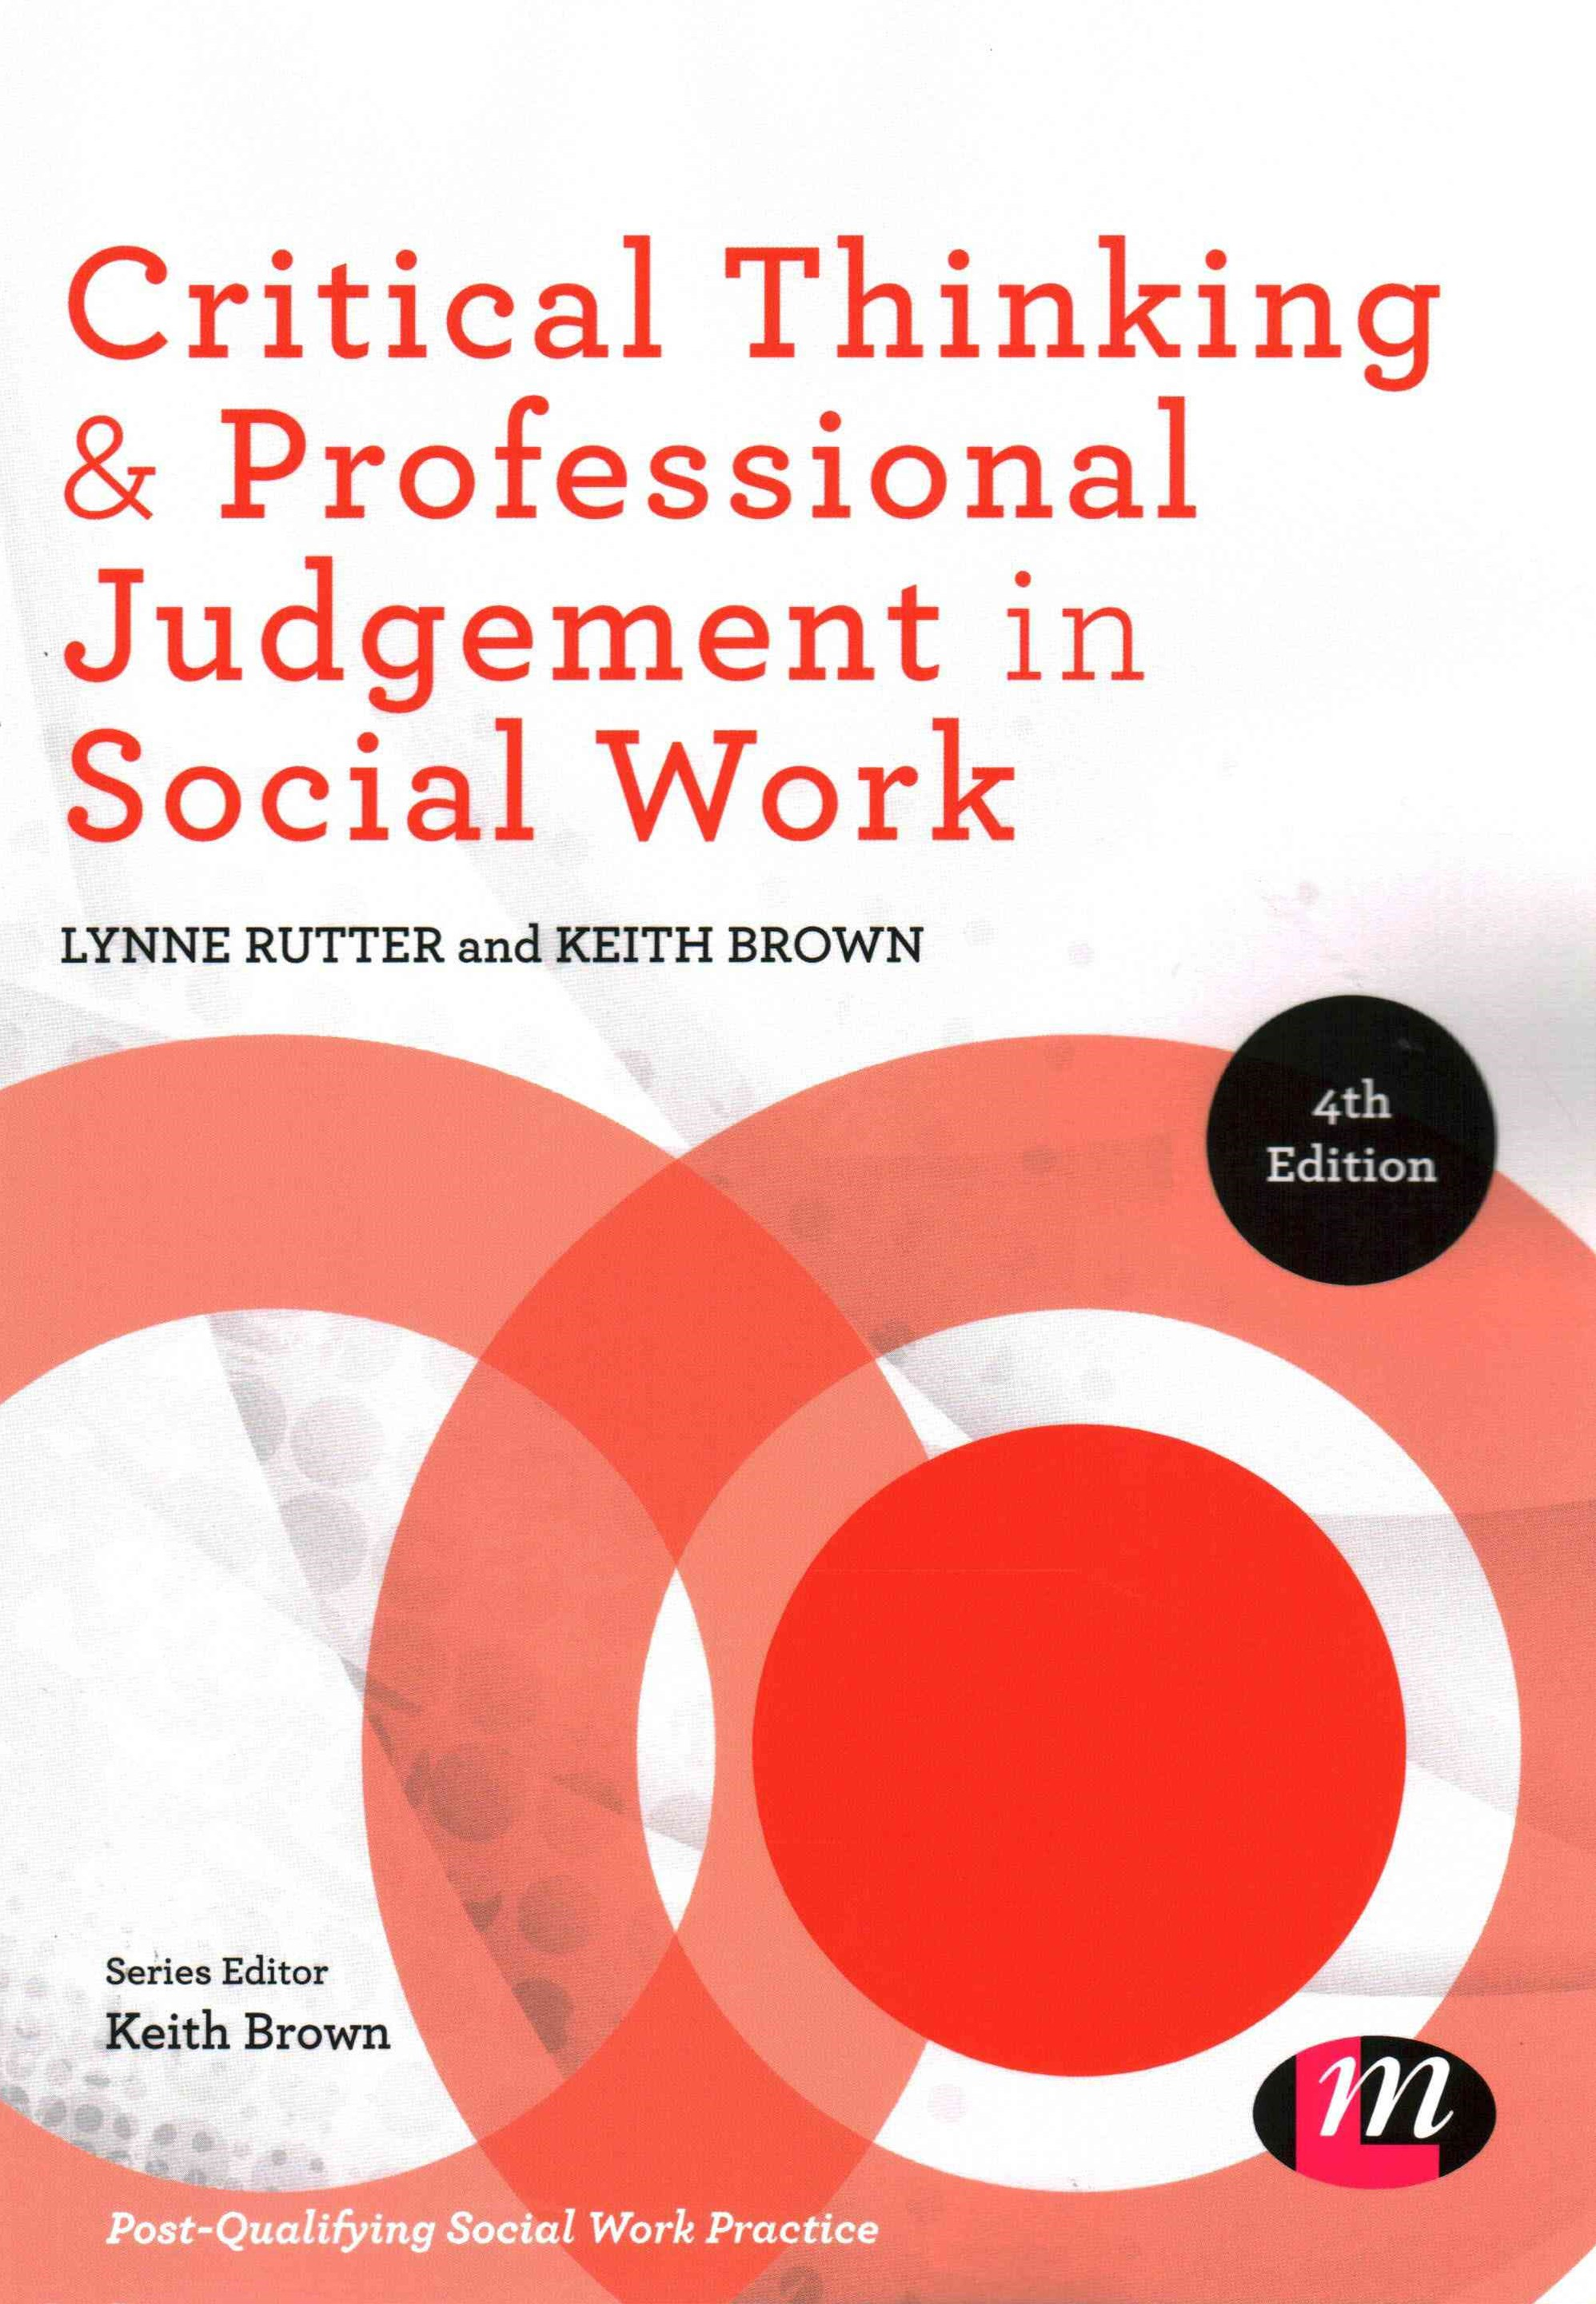 Critical Thinking and Professional Judgement for Social Work